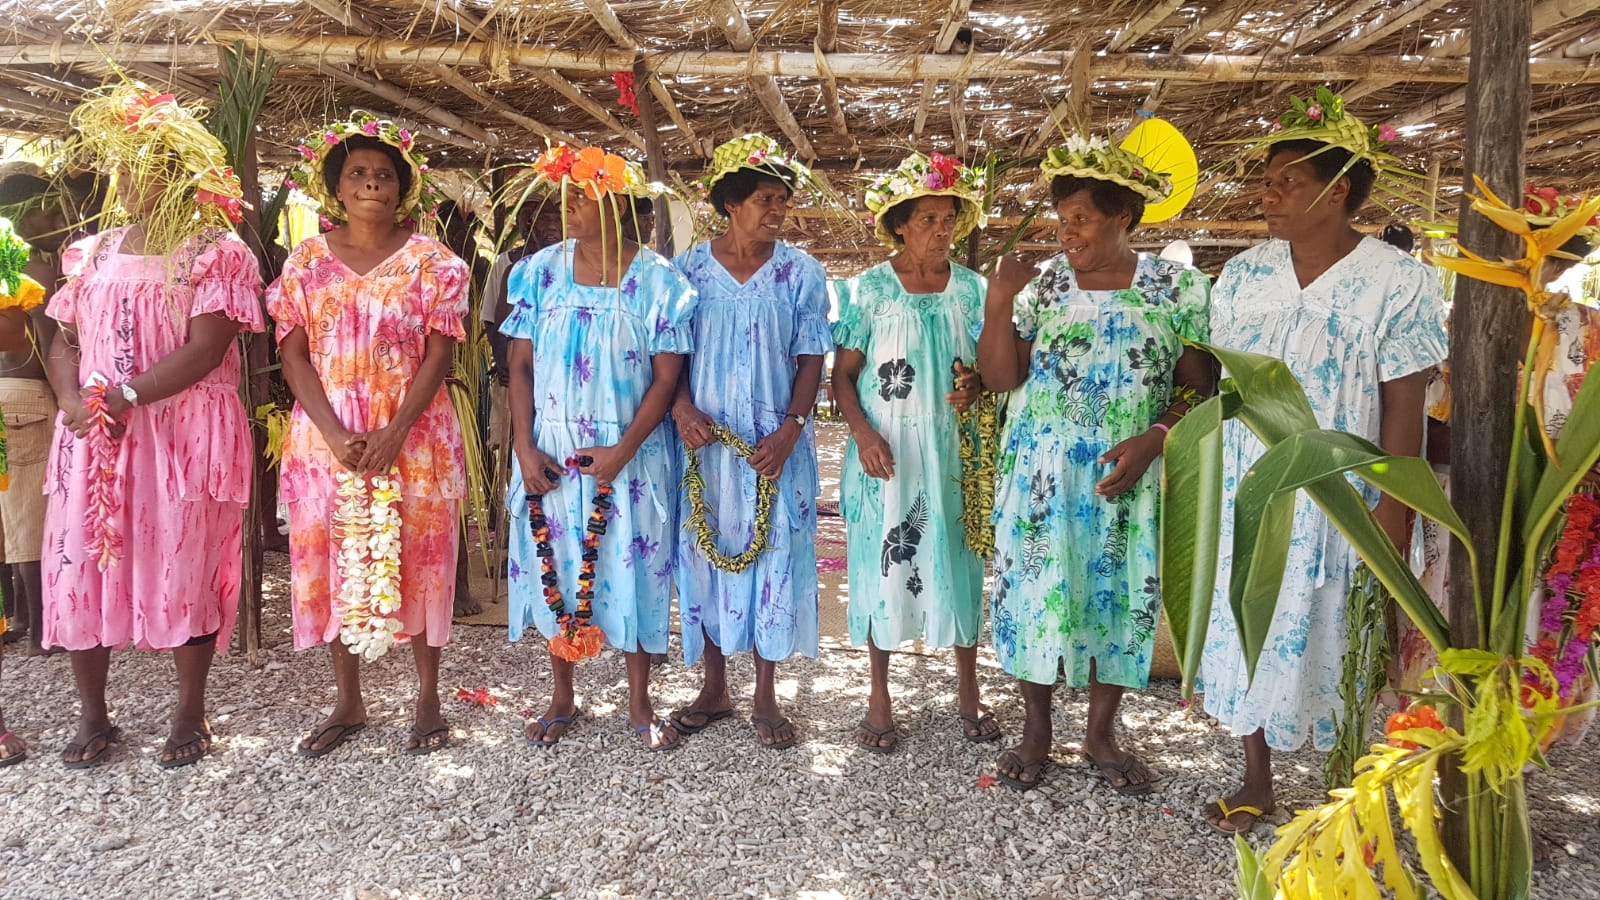 The village women looking bright and beautiful at the opening celebrations.jpg